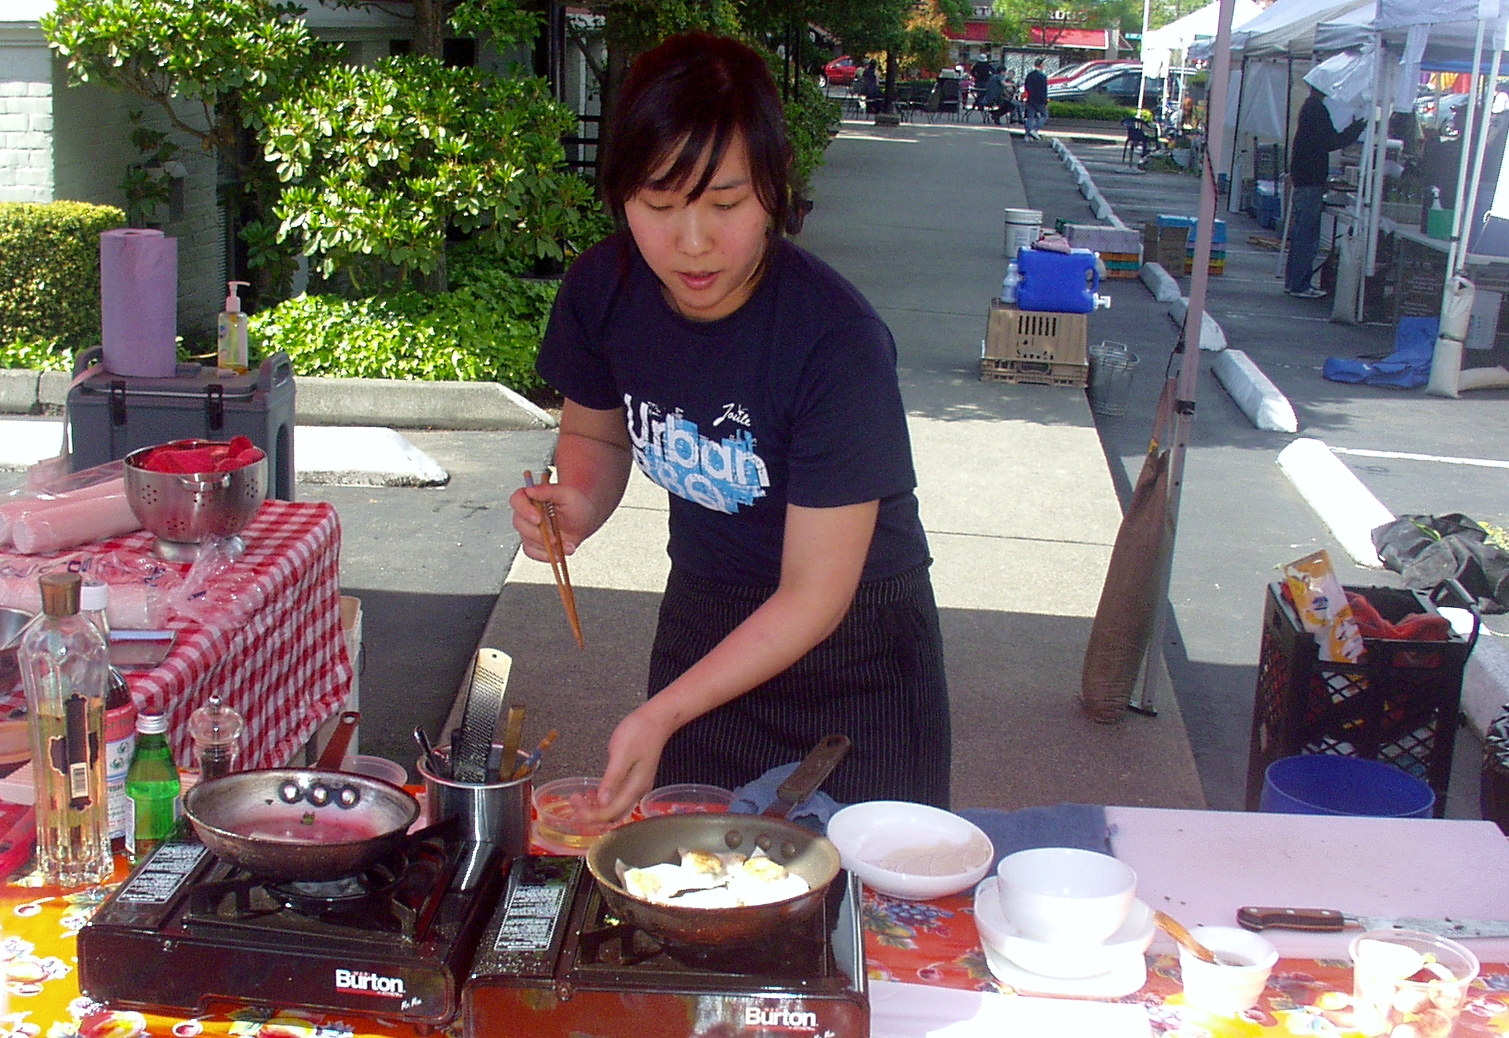 Chef Rachel Yang from Joule Restaurant performed the first cooking demonstration of the 2009 season. Photo copyright 2009 by Zachary D. Lyons.